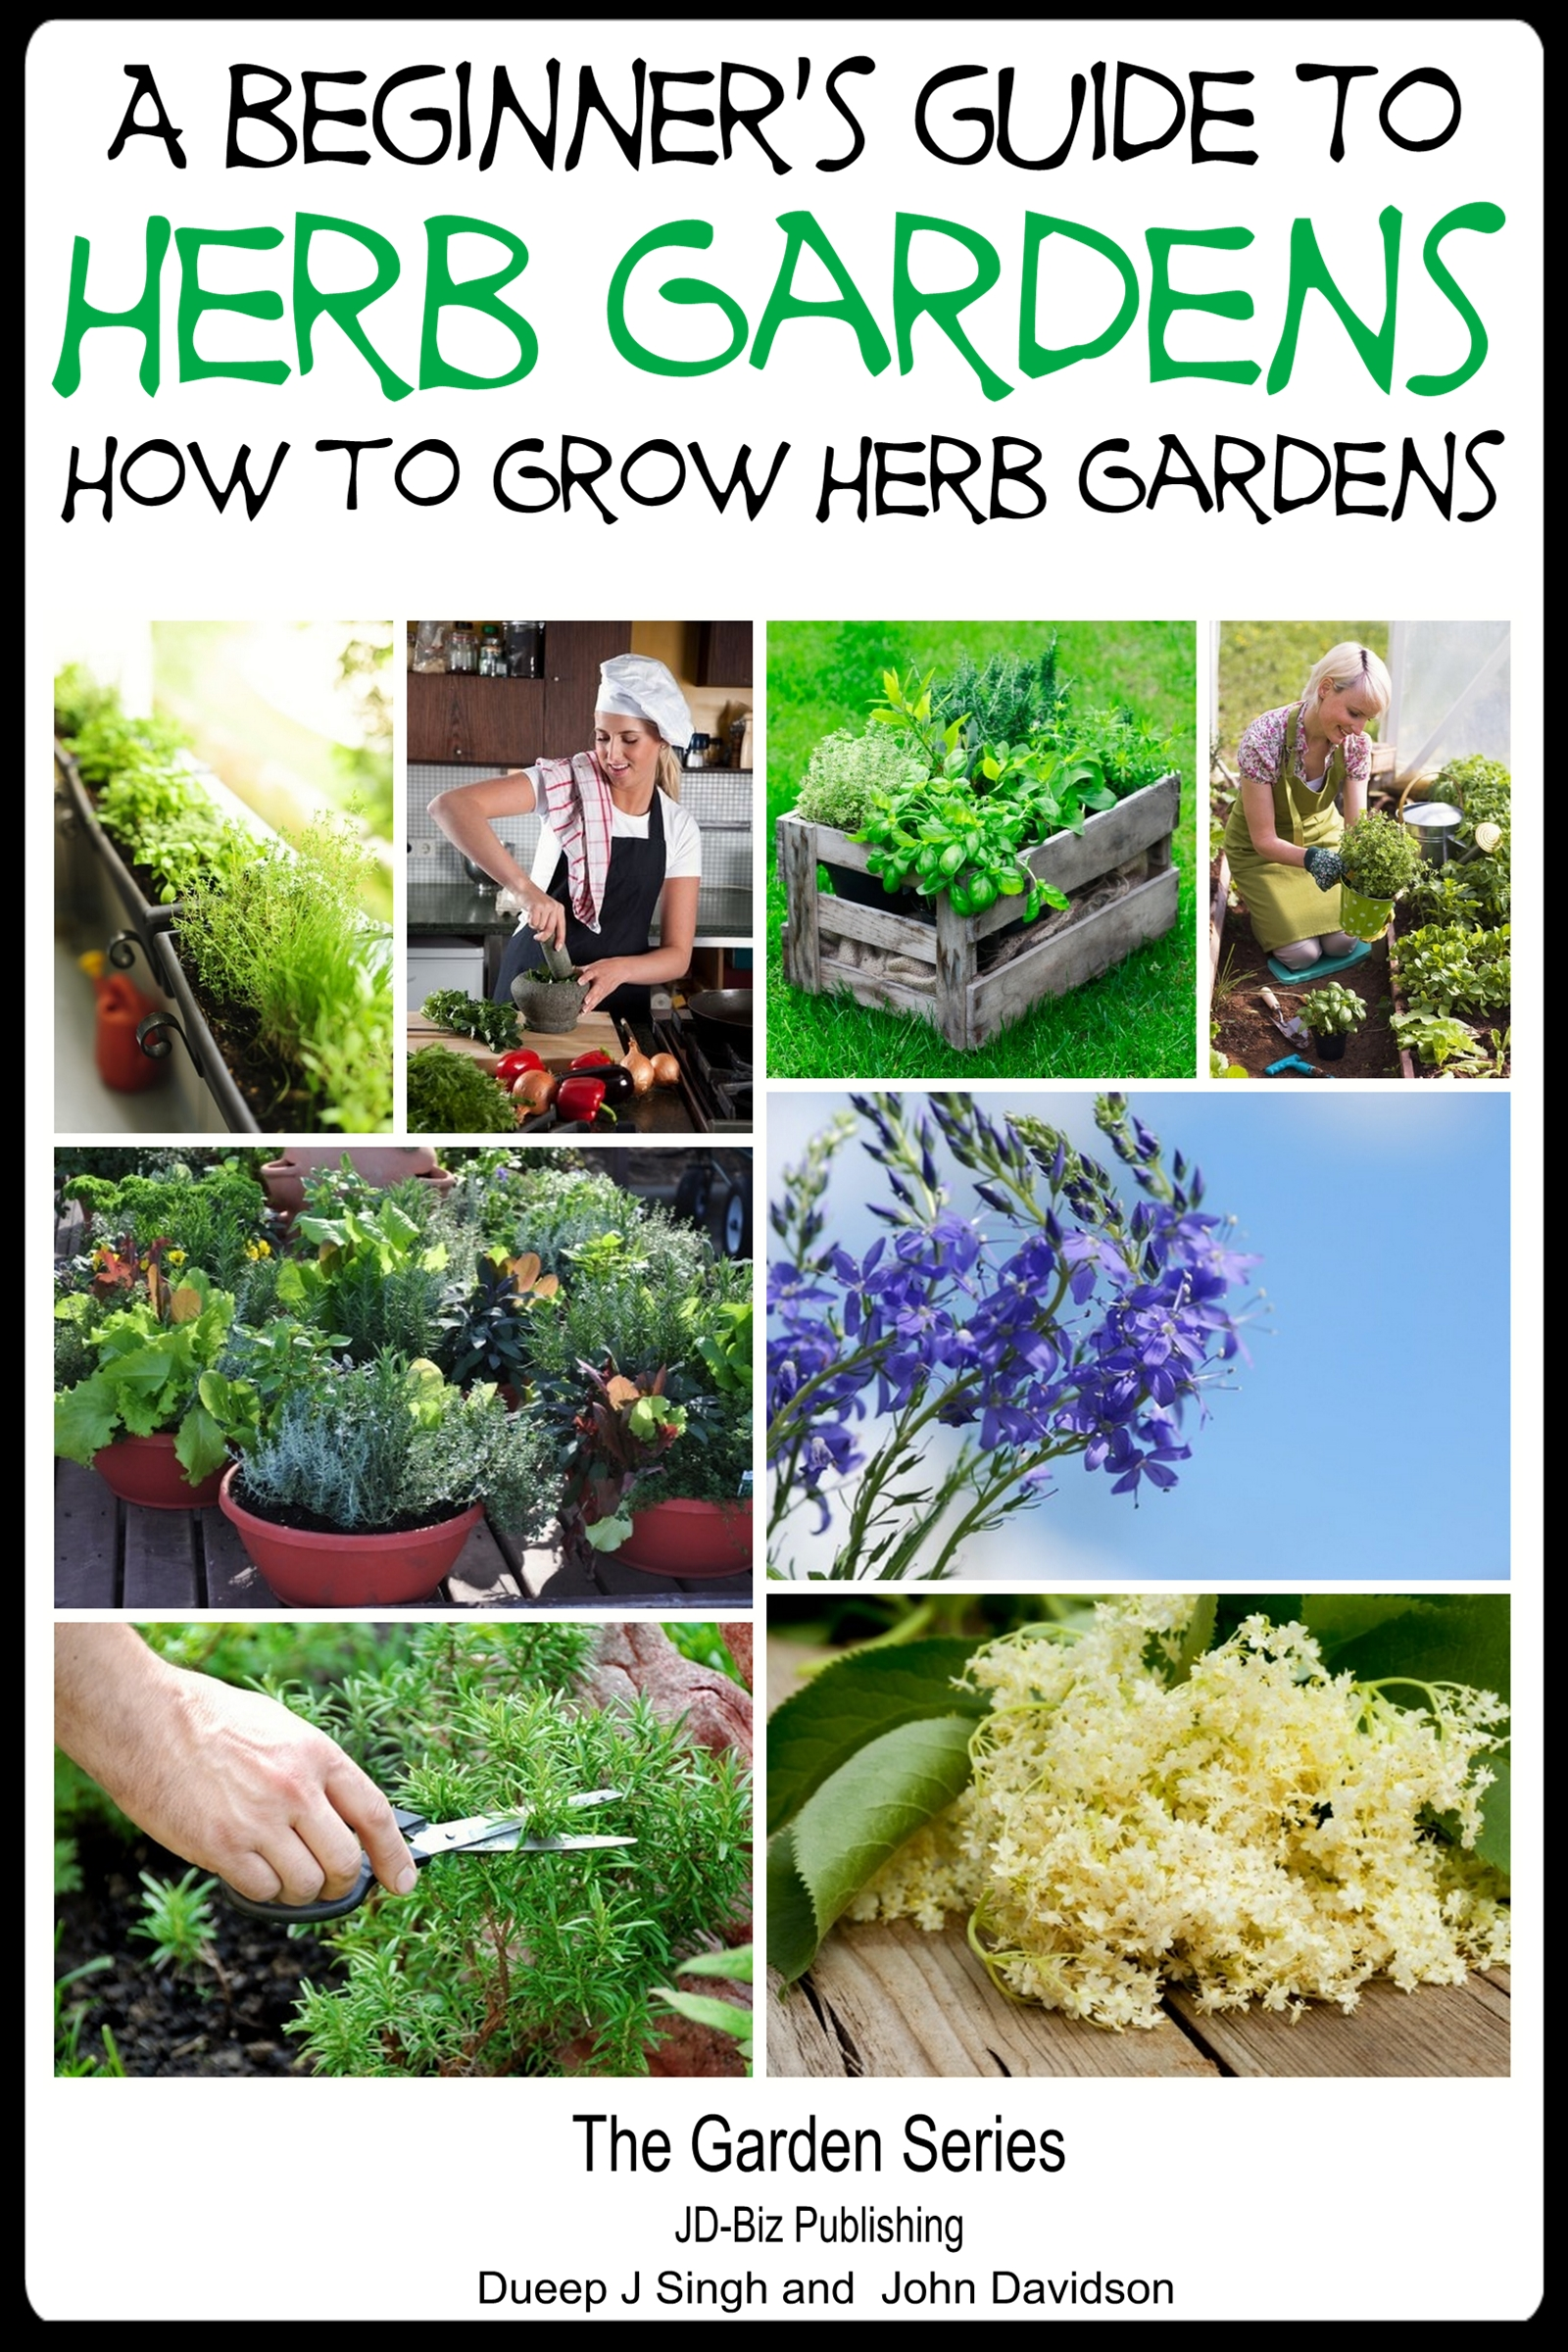 A Beginneru0027s Guide To Herb Gardening   How To Grow Herb Gardens